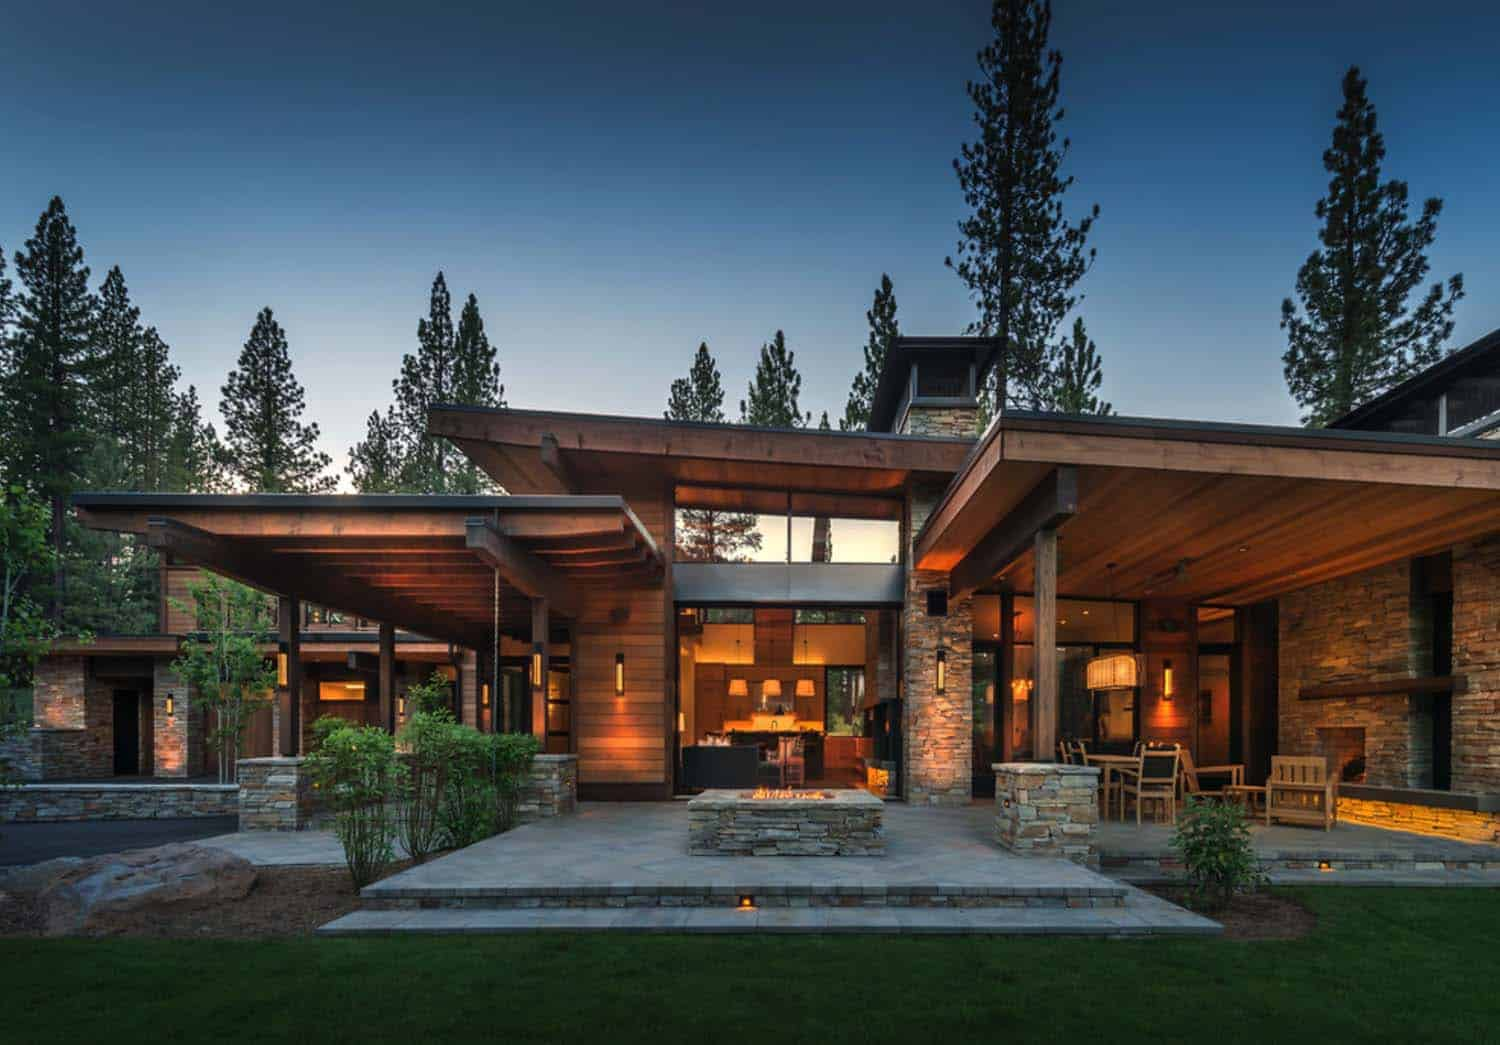 Tiny Home Designs: Mountain Modern Home In Martis Camp With Indoor-outdoor Living